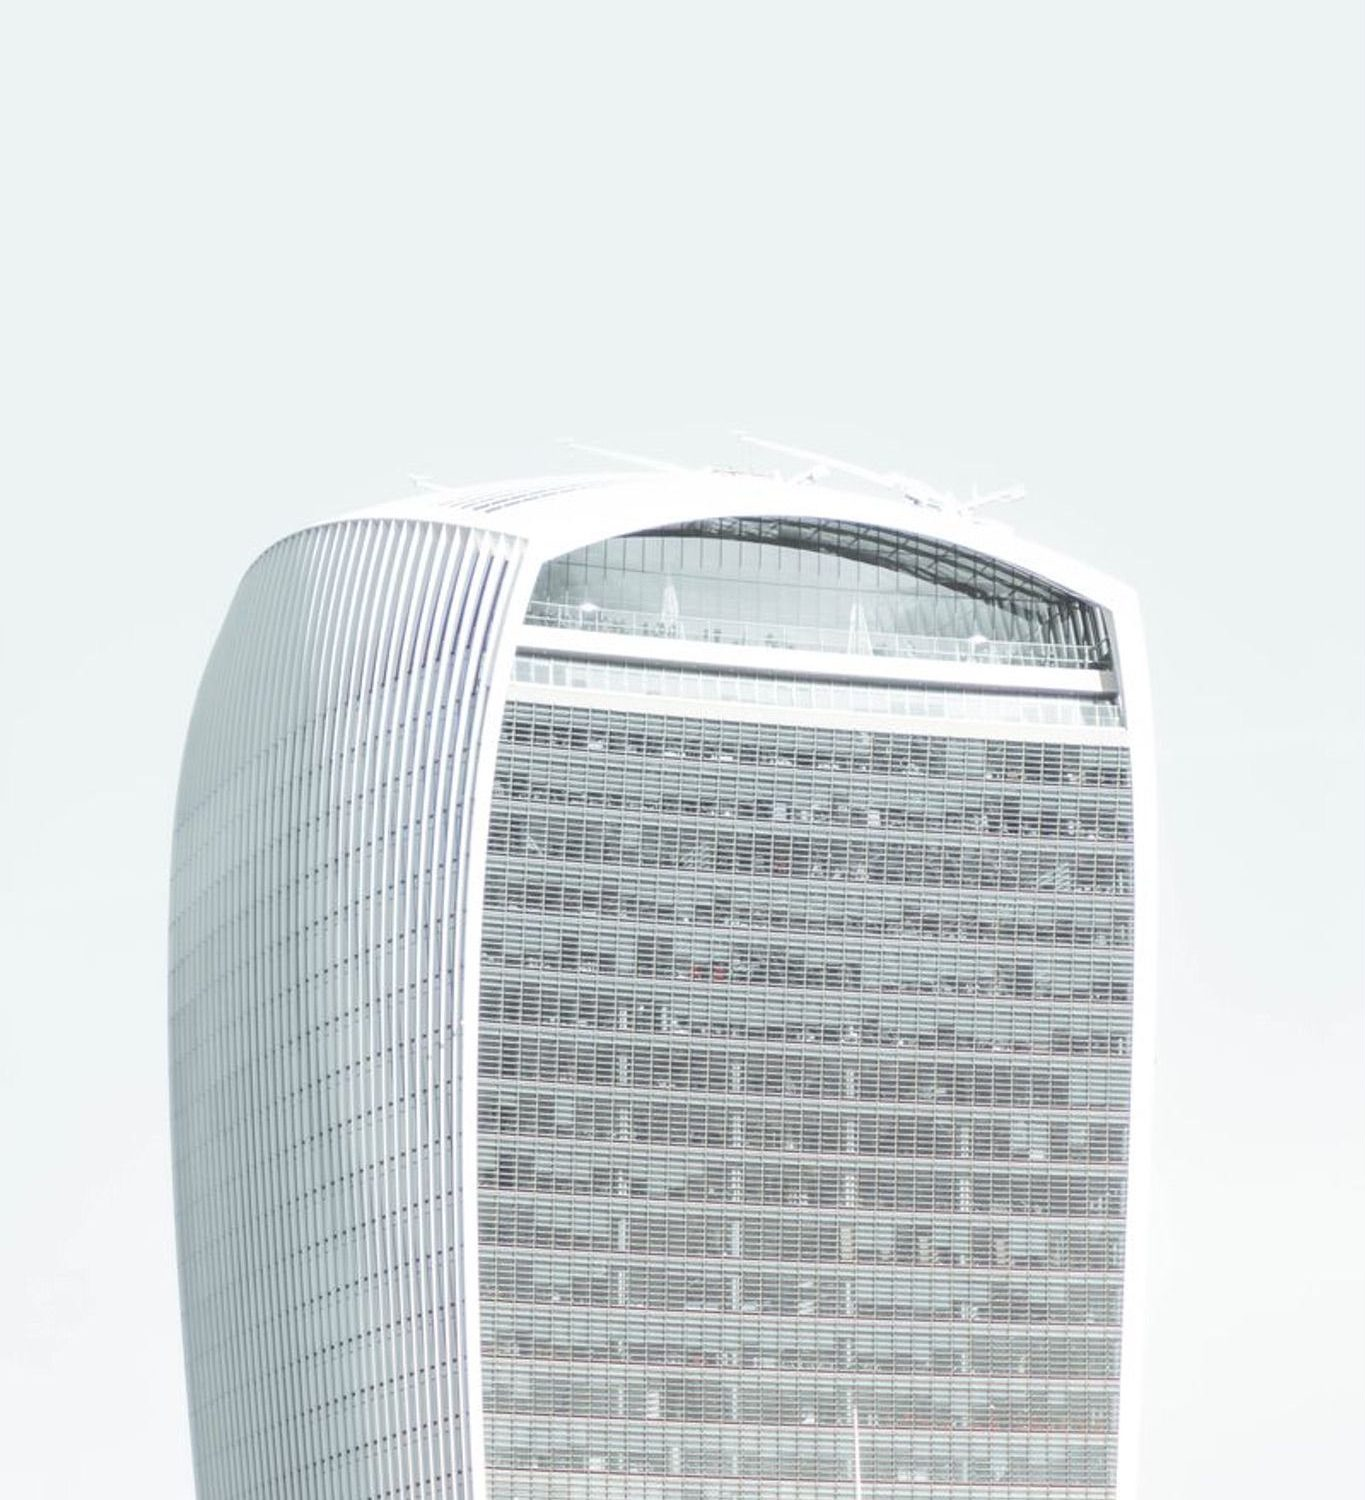 A lumpish building in new york